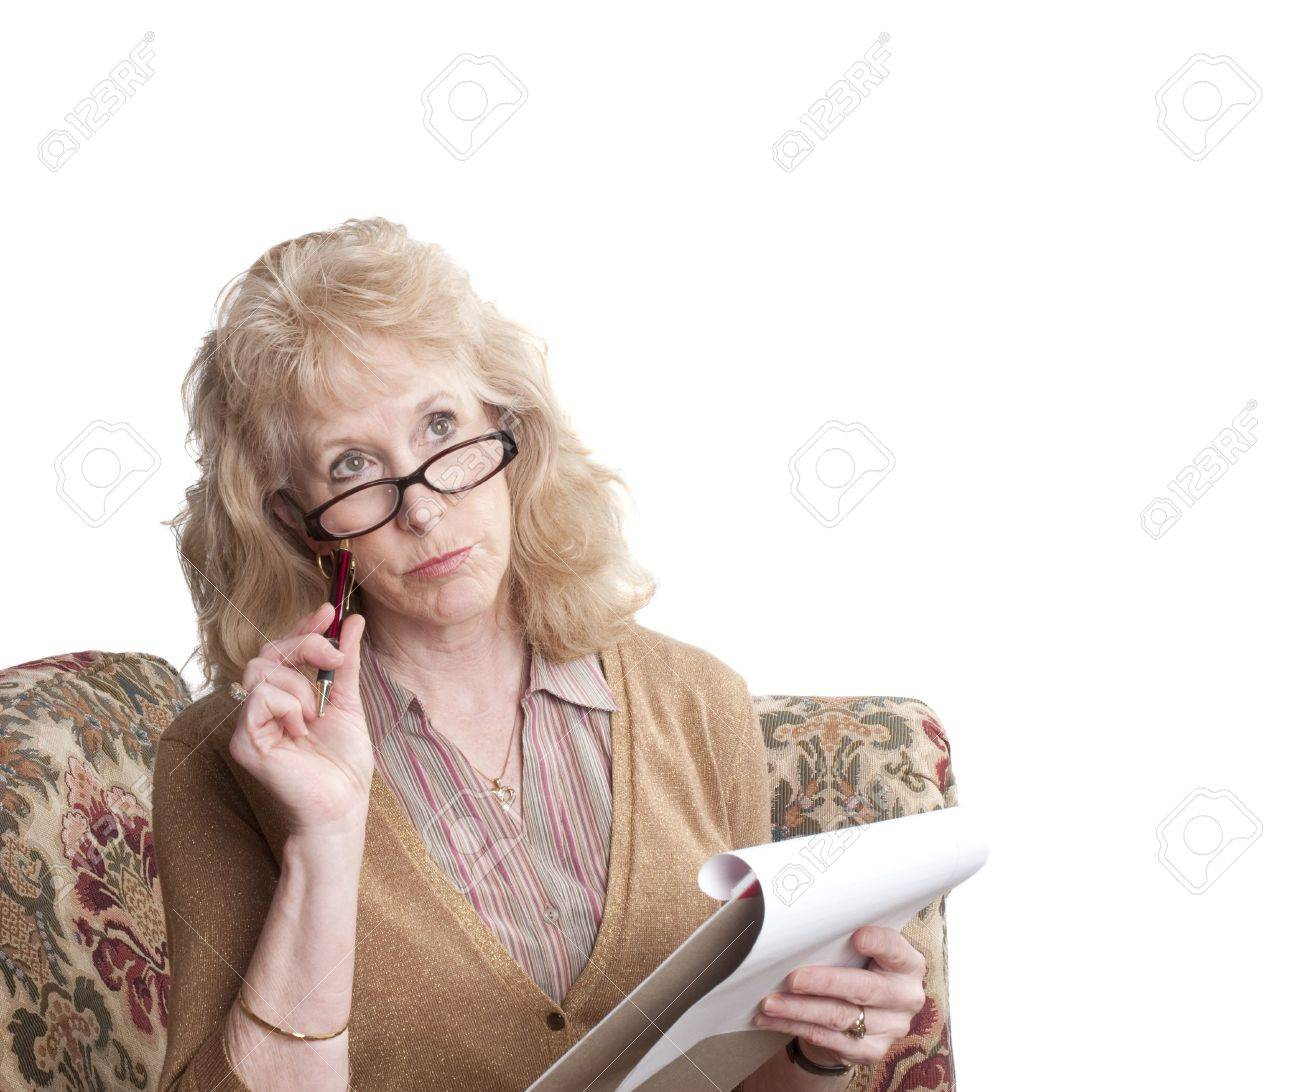 middle-aged woman with glasses on, sitting on sofa with note pad looking perplexed,  isolated on white Stock Photo - 5025762